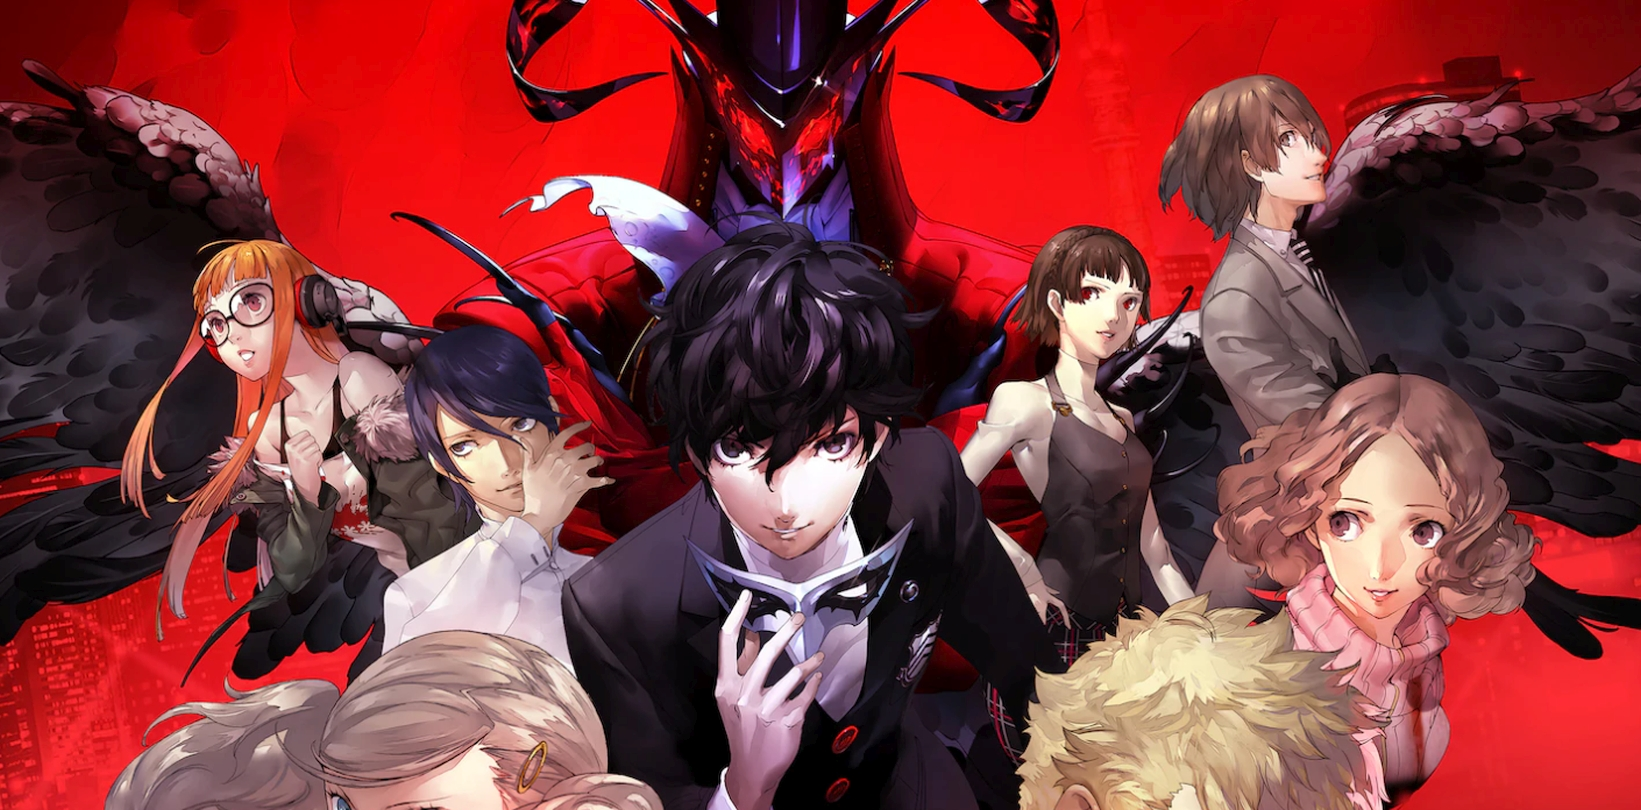 Atlus Releases Catherine And Multiple Persona Game Soundtracks On Spotify